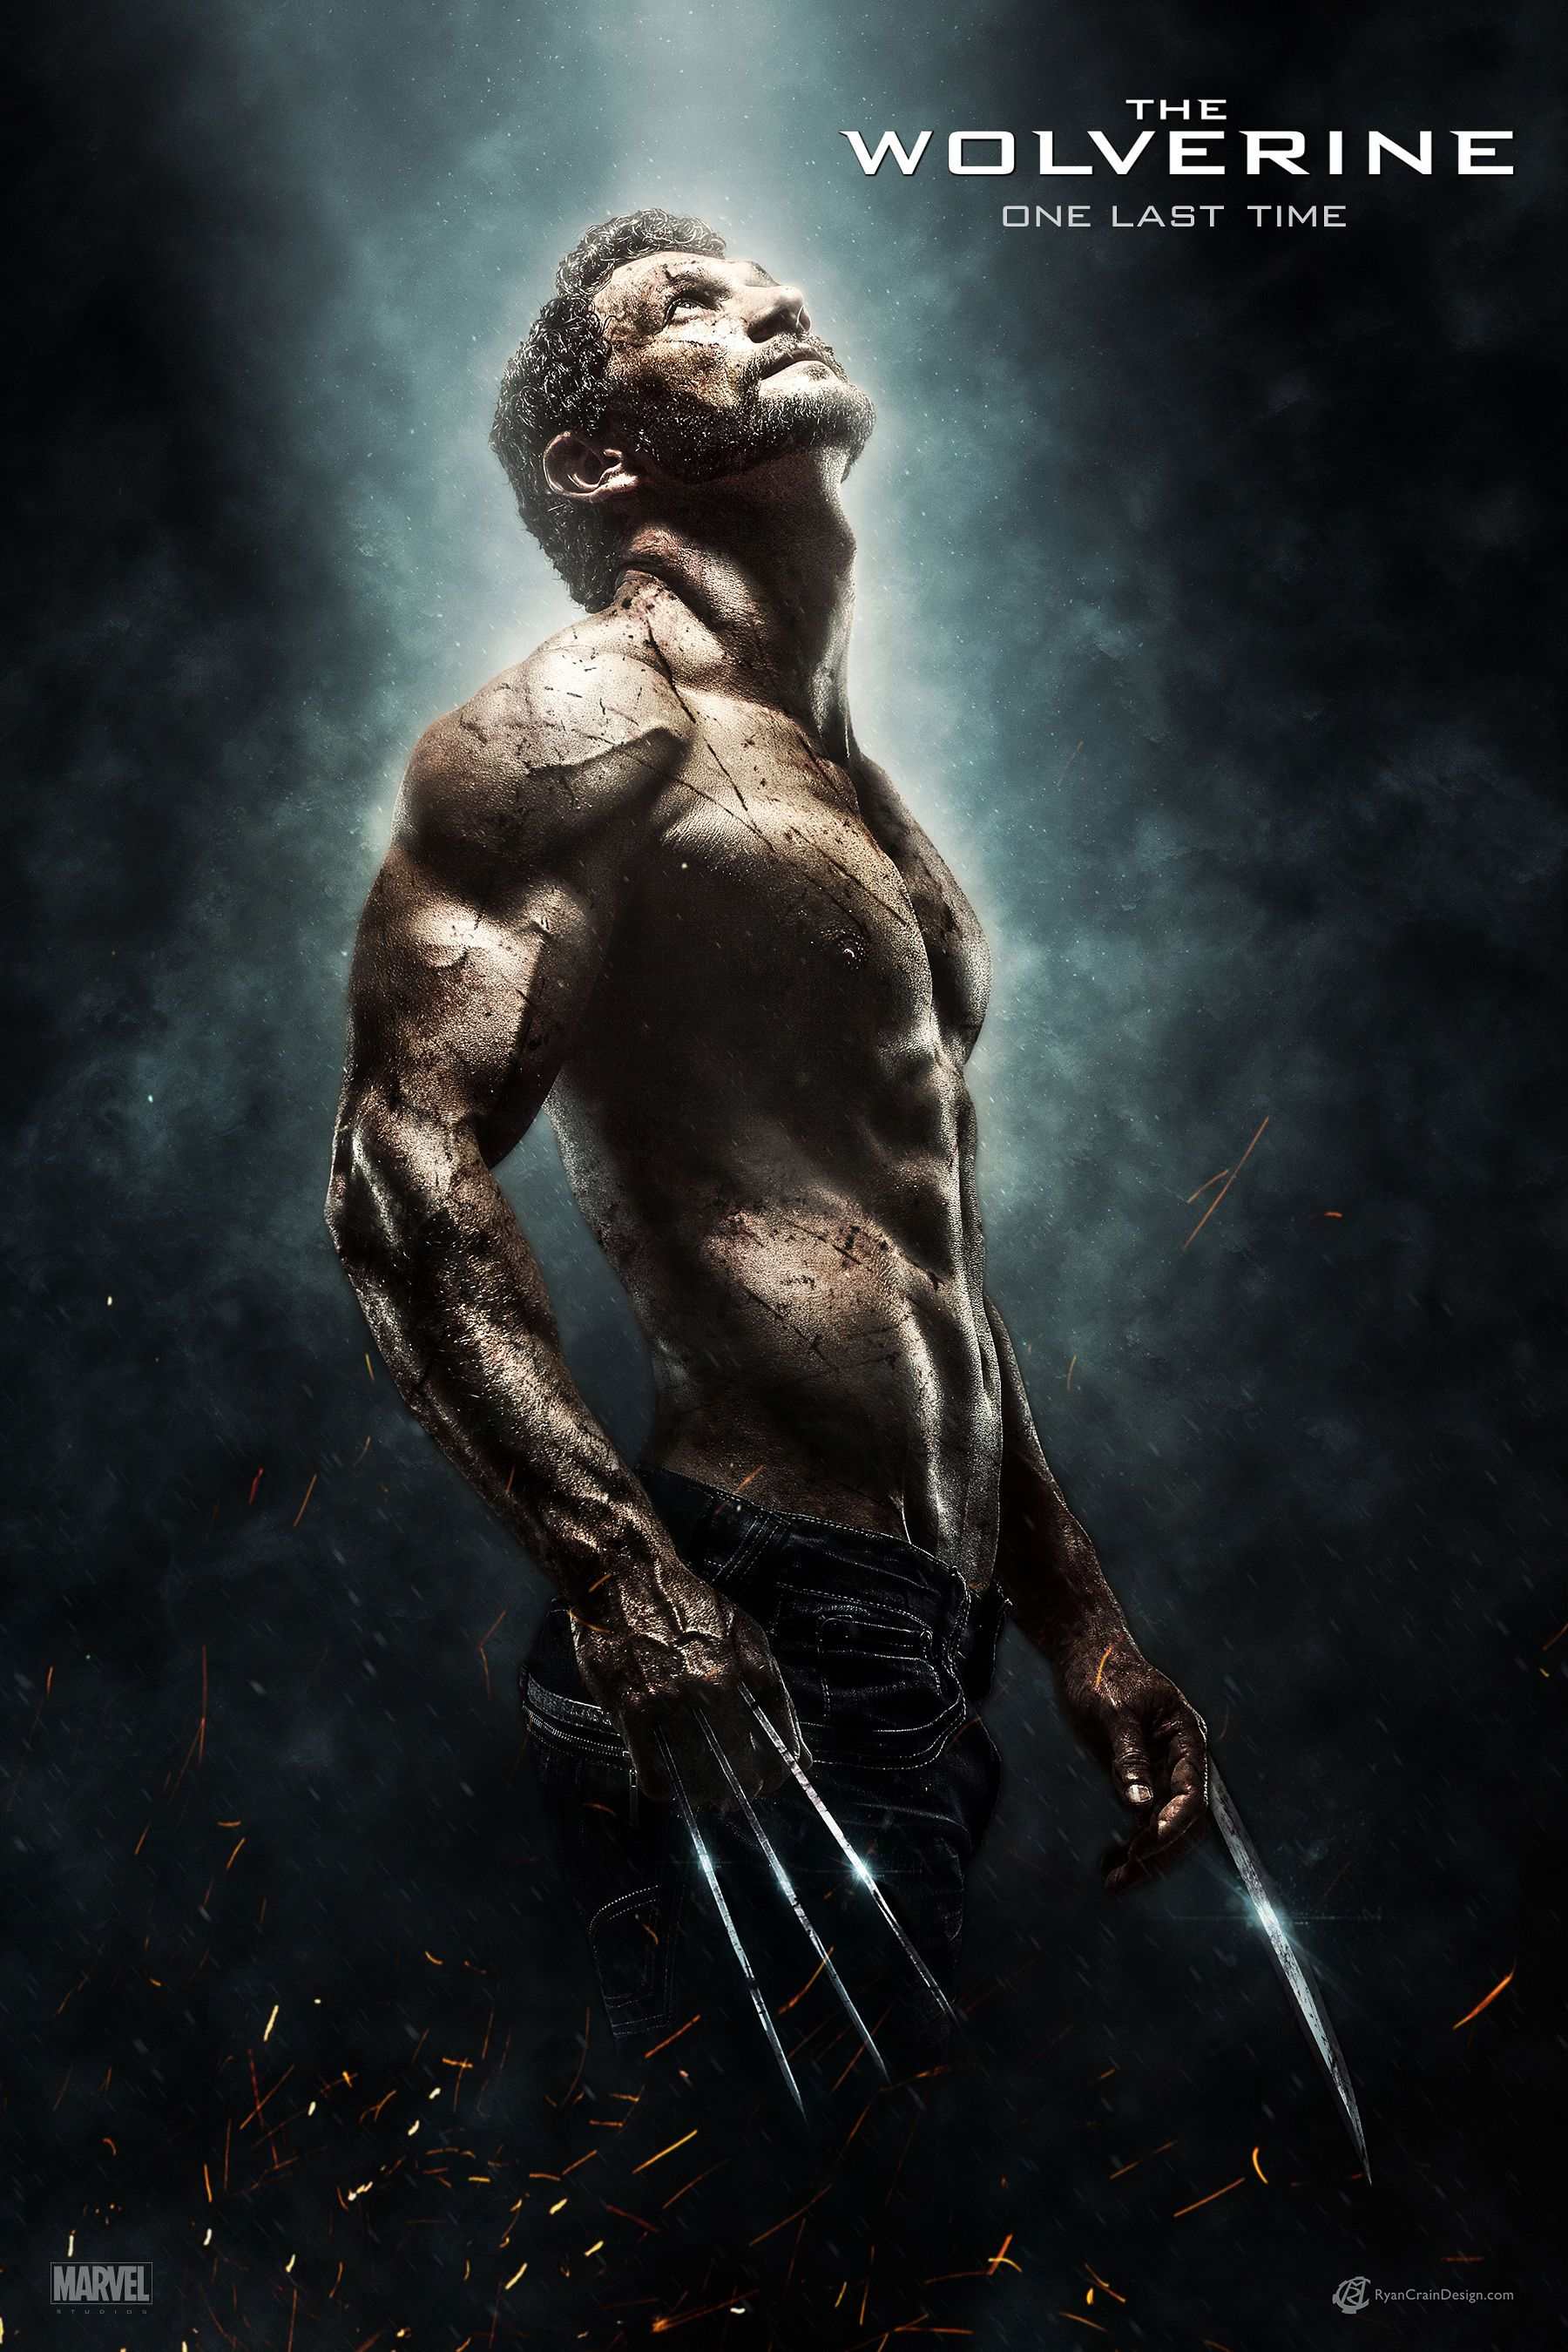 4f18850650b THE WOLVERINE: One Last Time' Movie Poster | Wolverine Concept ...